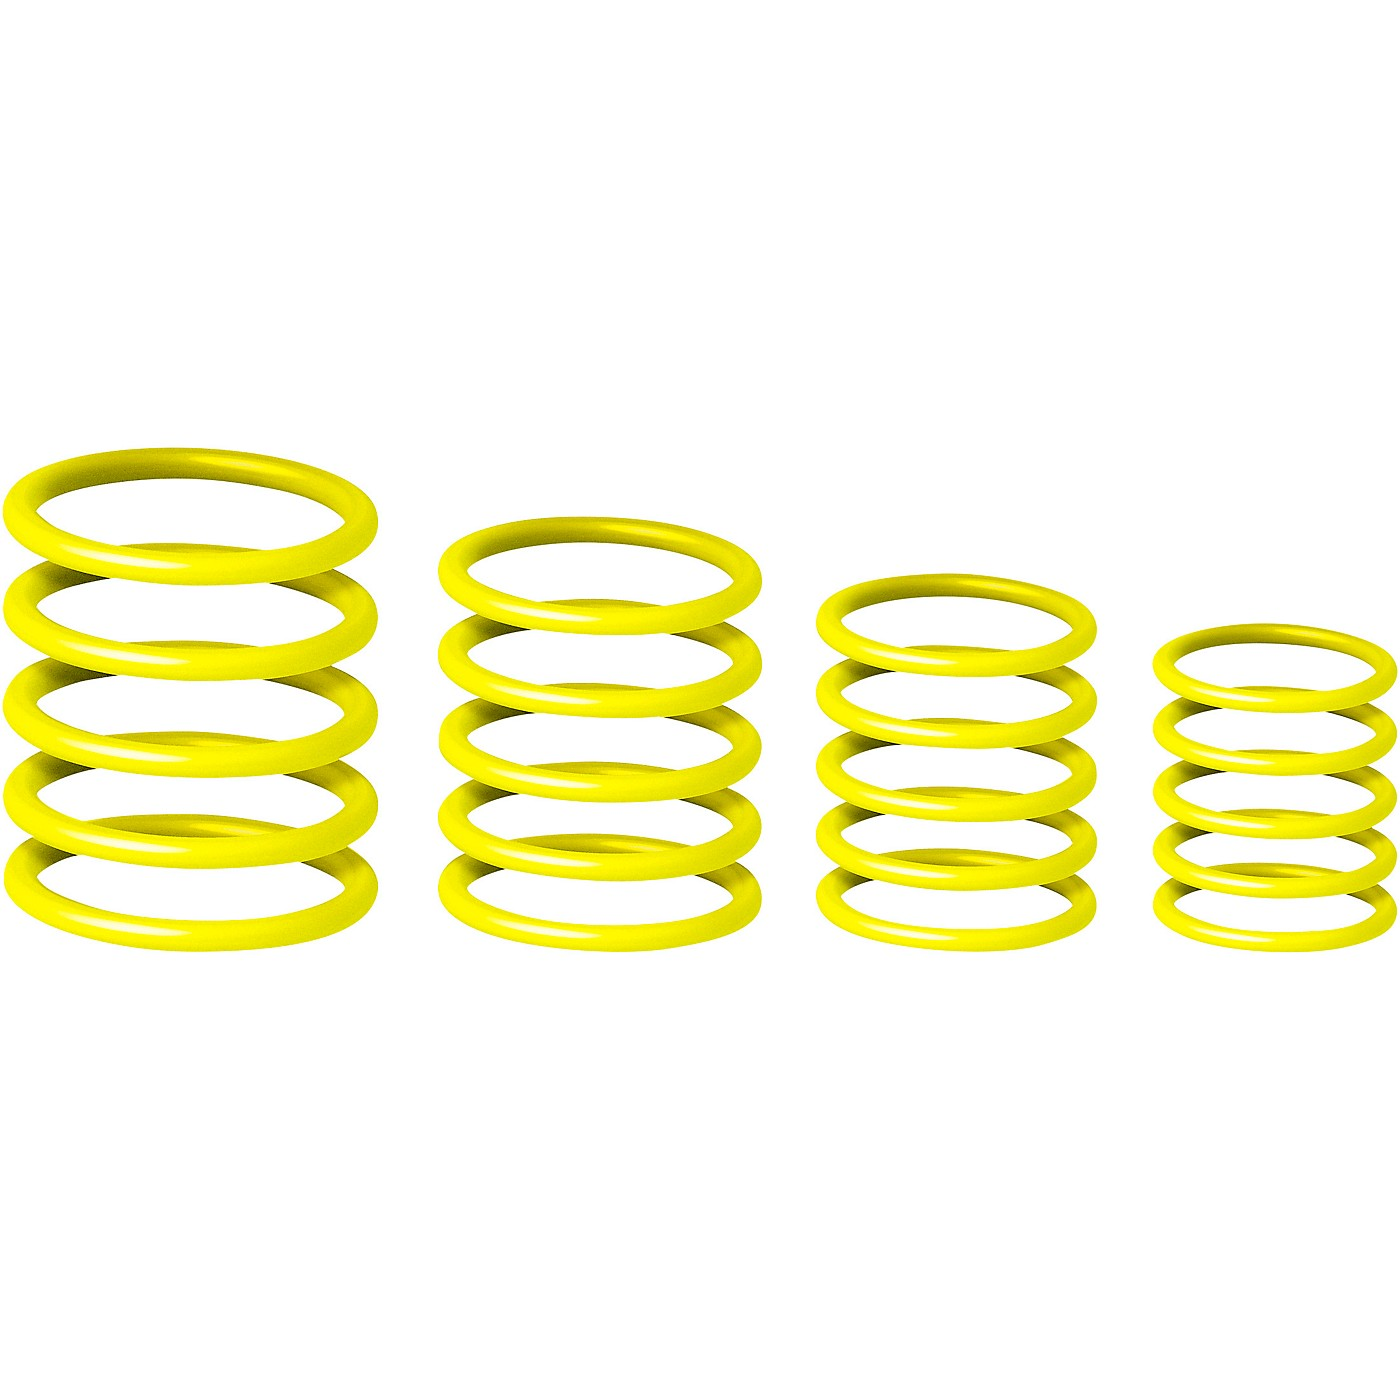 Gravity Stands Universal Gravity Ring Pack - Sunshine Yellow thumbnail